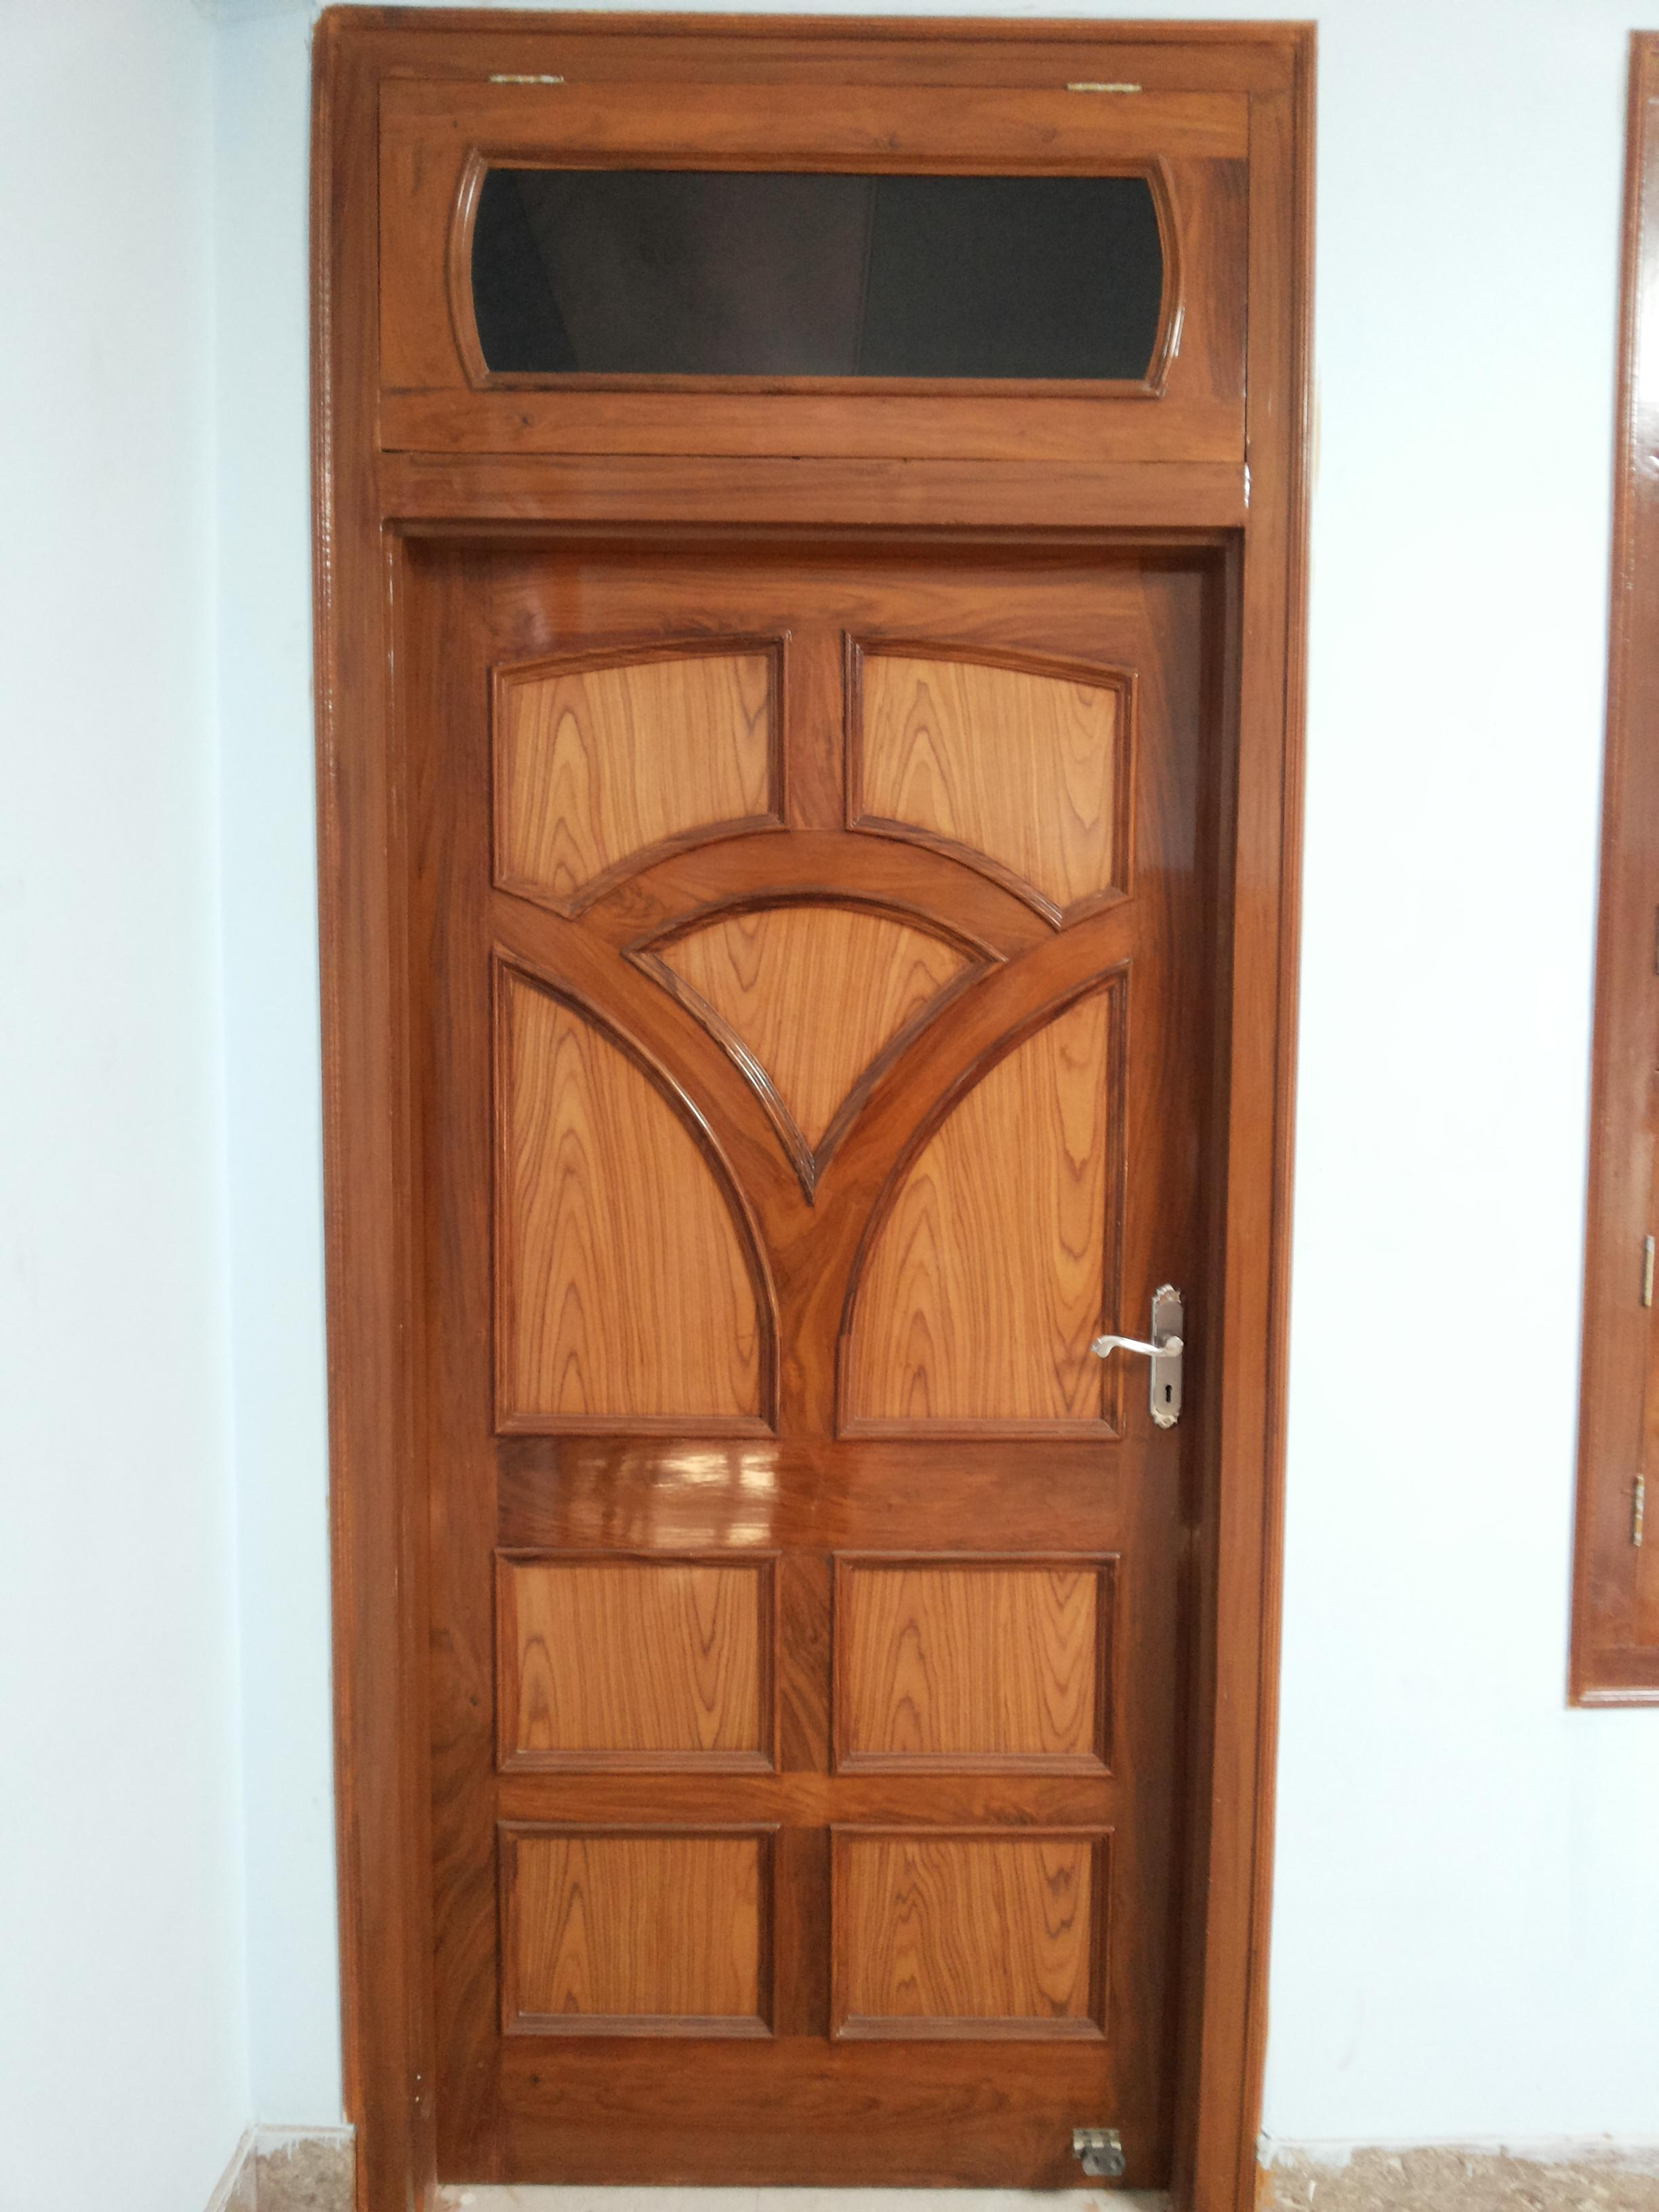 Single panel interior wood door design gharexpert for Door design in wood images